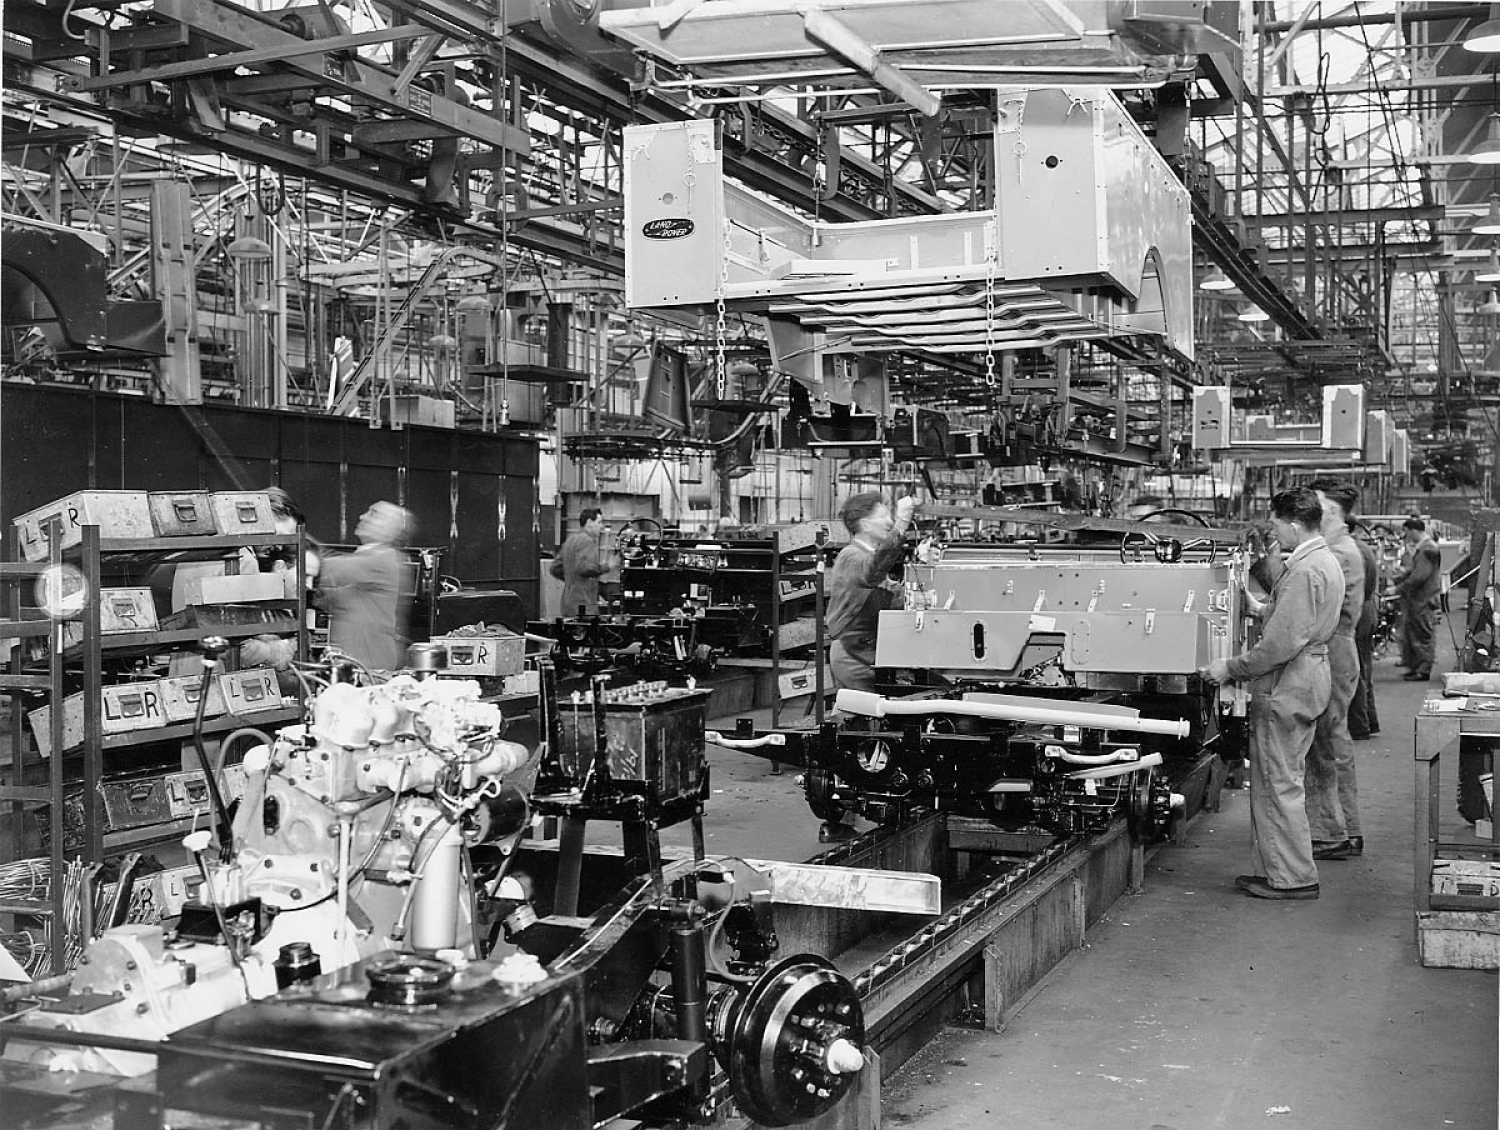 Series Land Rover Production - Solihull 1950s